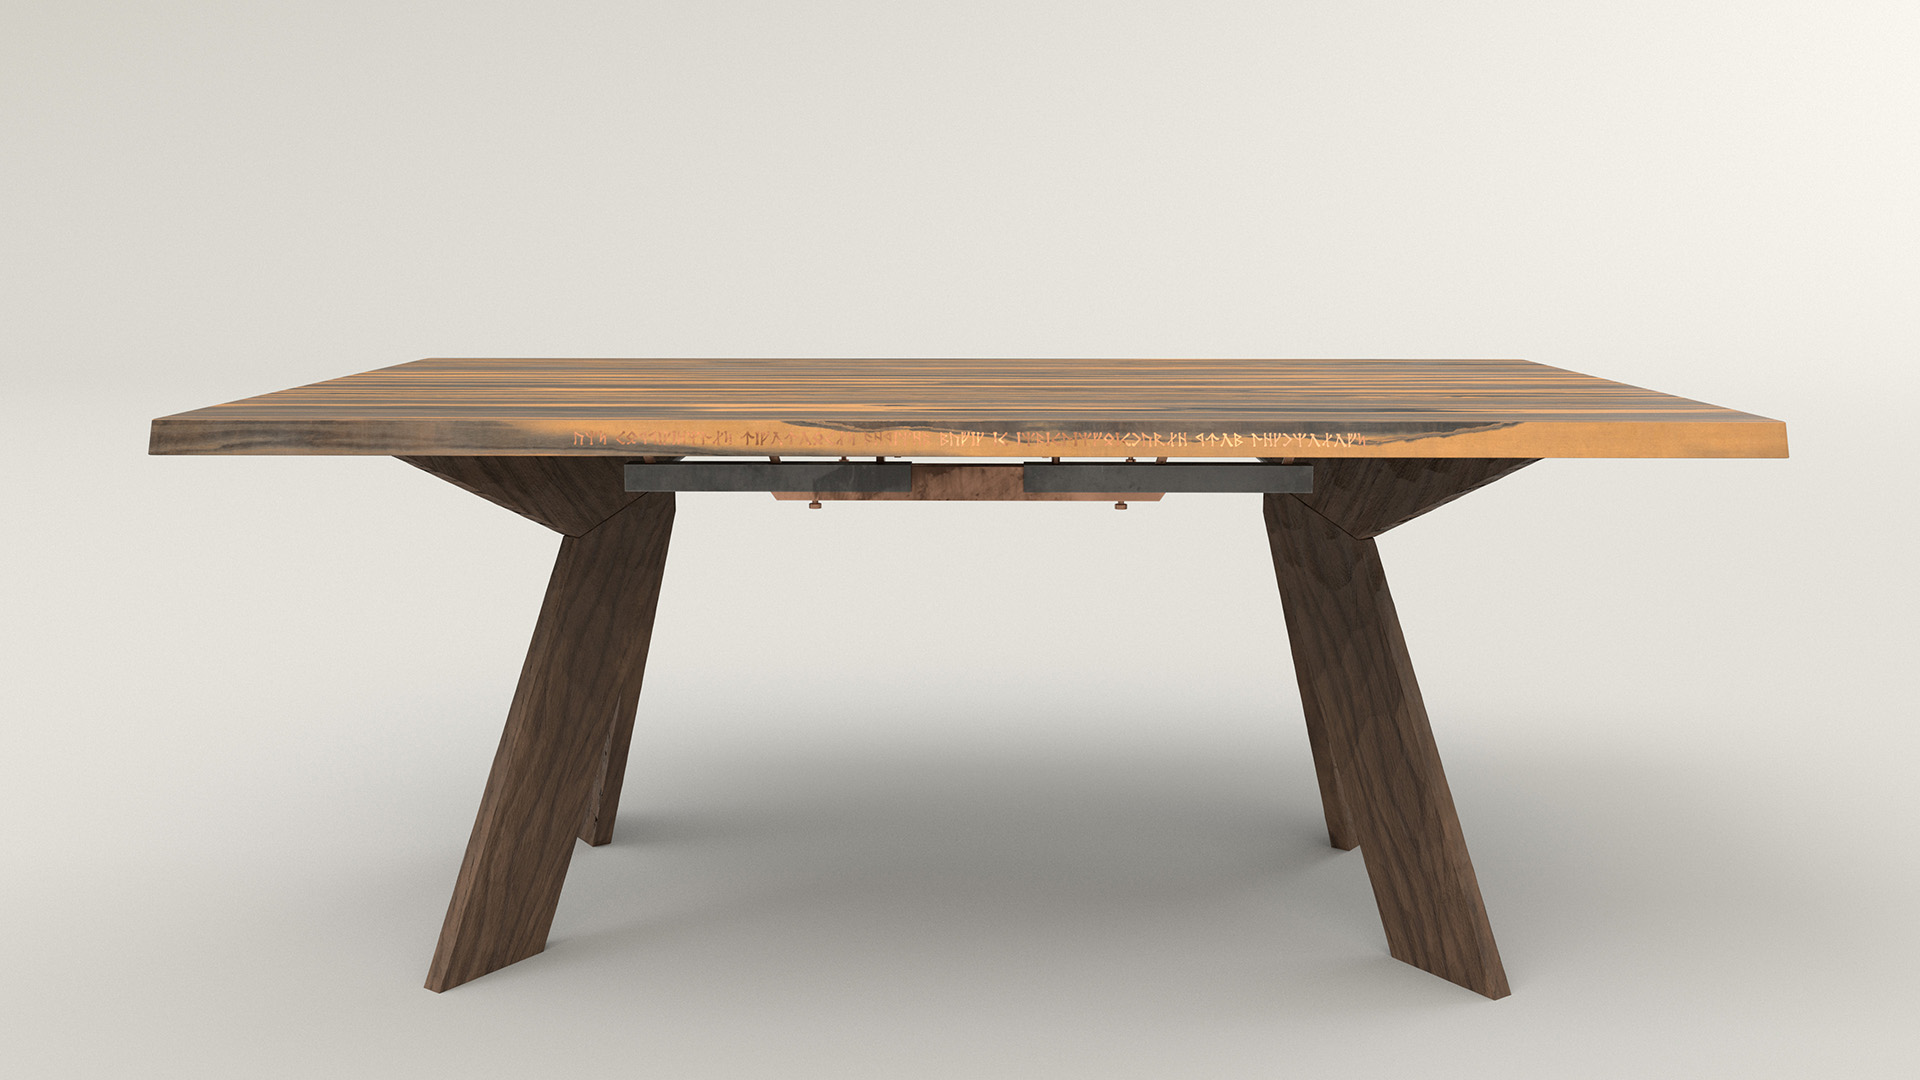 Figure 16: Main table with chiseled dark wood legs, a metal underframe, a lighter wood top, and gold inlaid runes on the side.